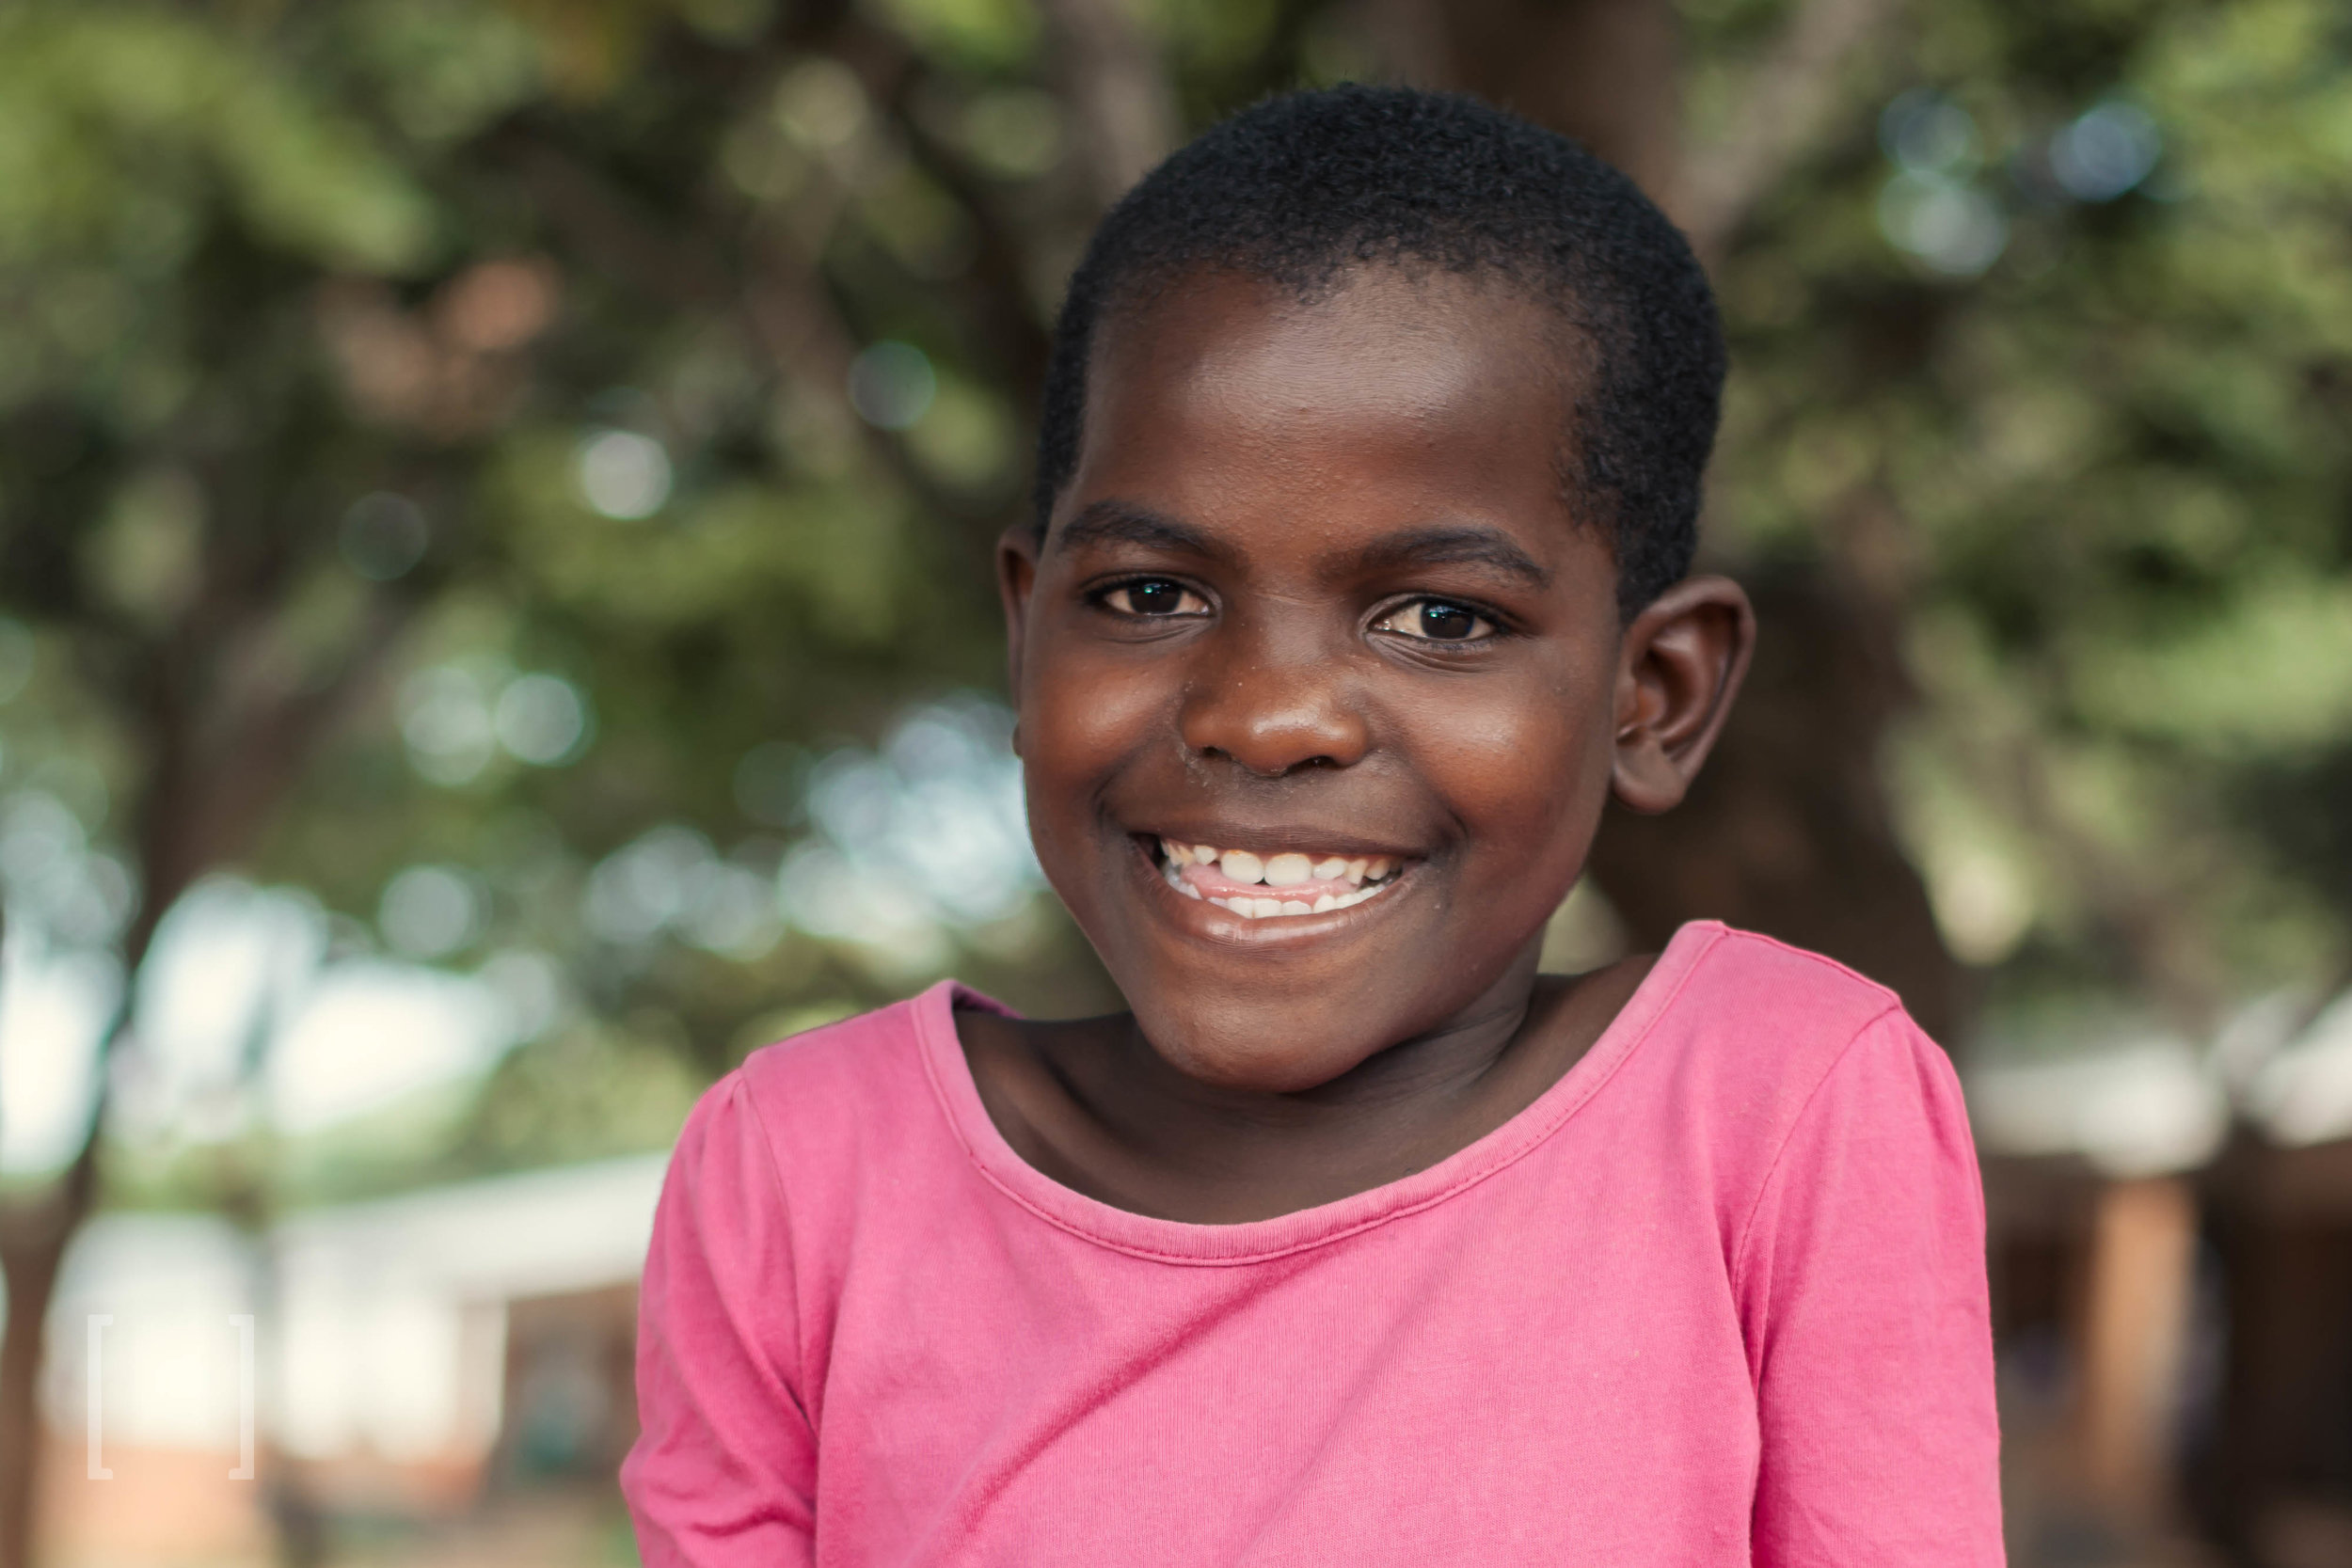 Nomsa - Nomsa was very malnourished and weak when she arrived to Home of Hope as a small child. She's now a strong and healthy 7-yr old. Be her champion!